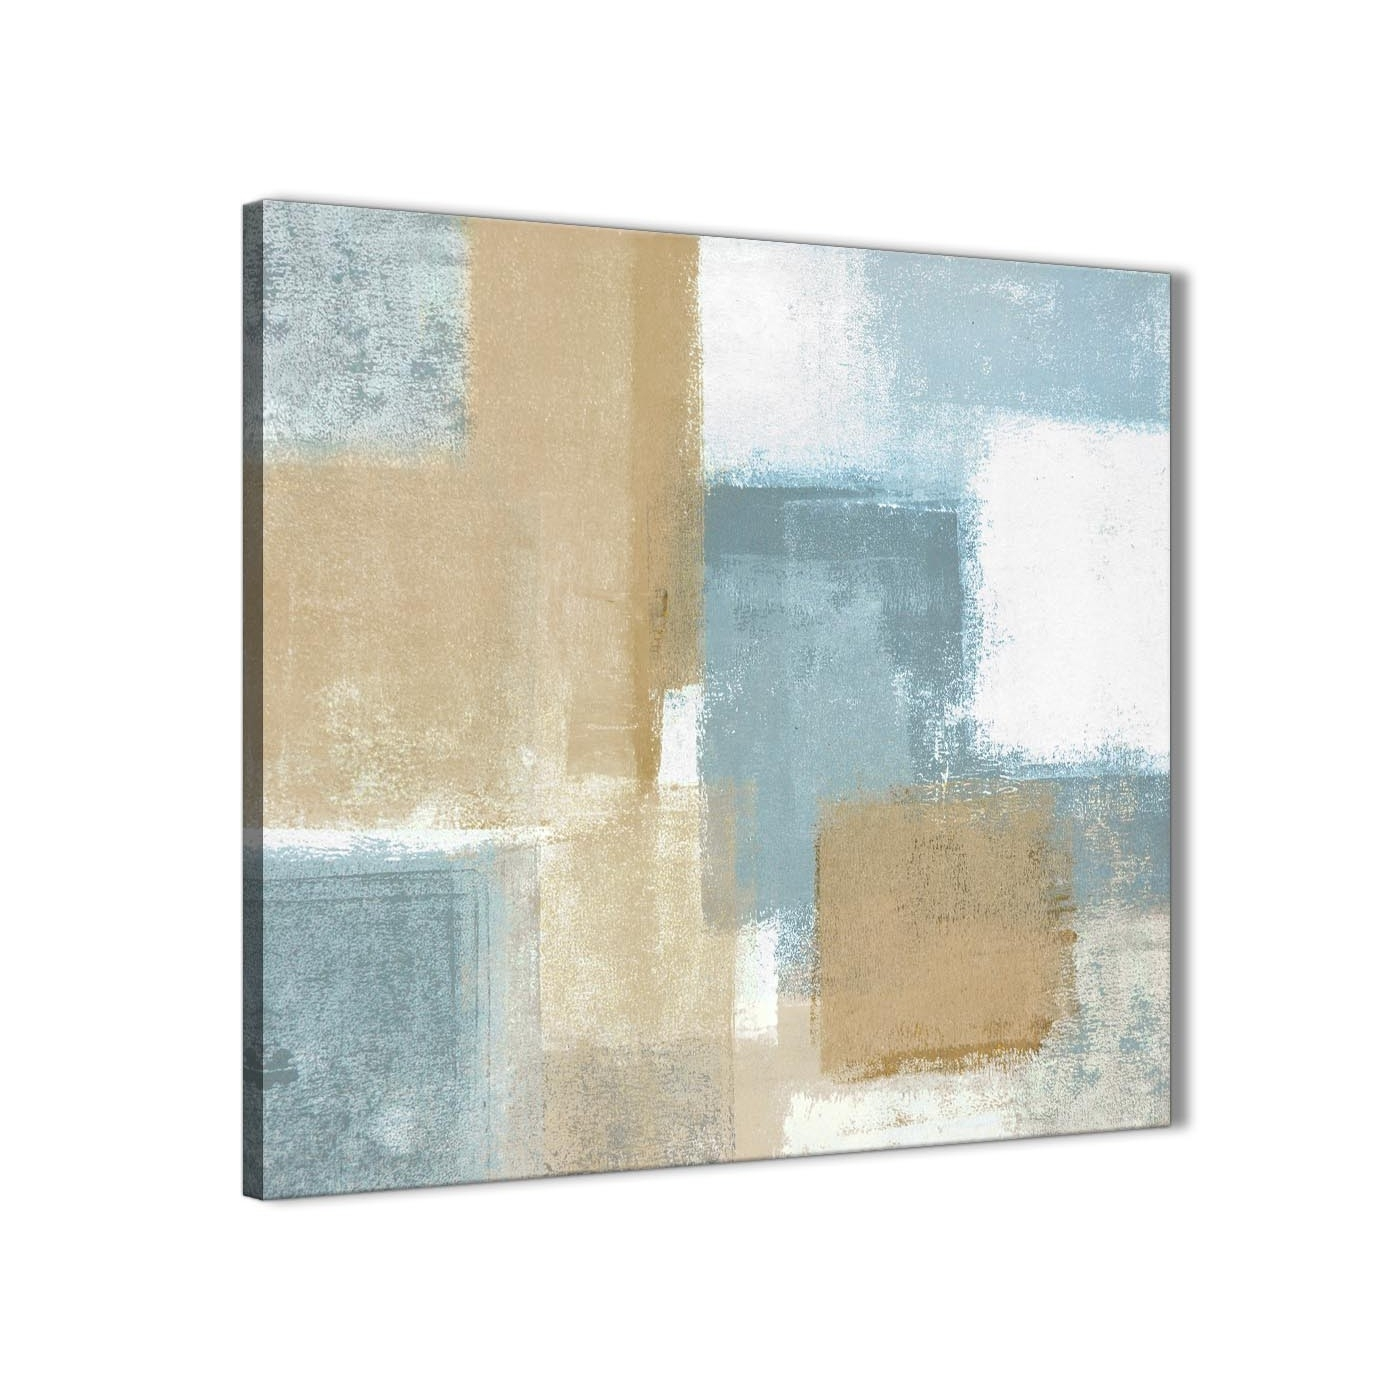 Blue Beige Brown Abstract Painting Canvas Wall Art Print – Modern In Most Recently Released Blue And Brown Abstract Wall Art (View 19 of 20)